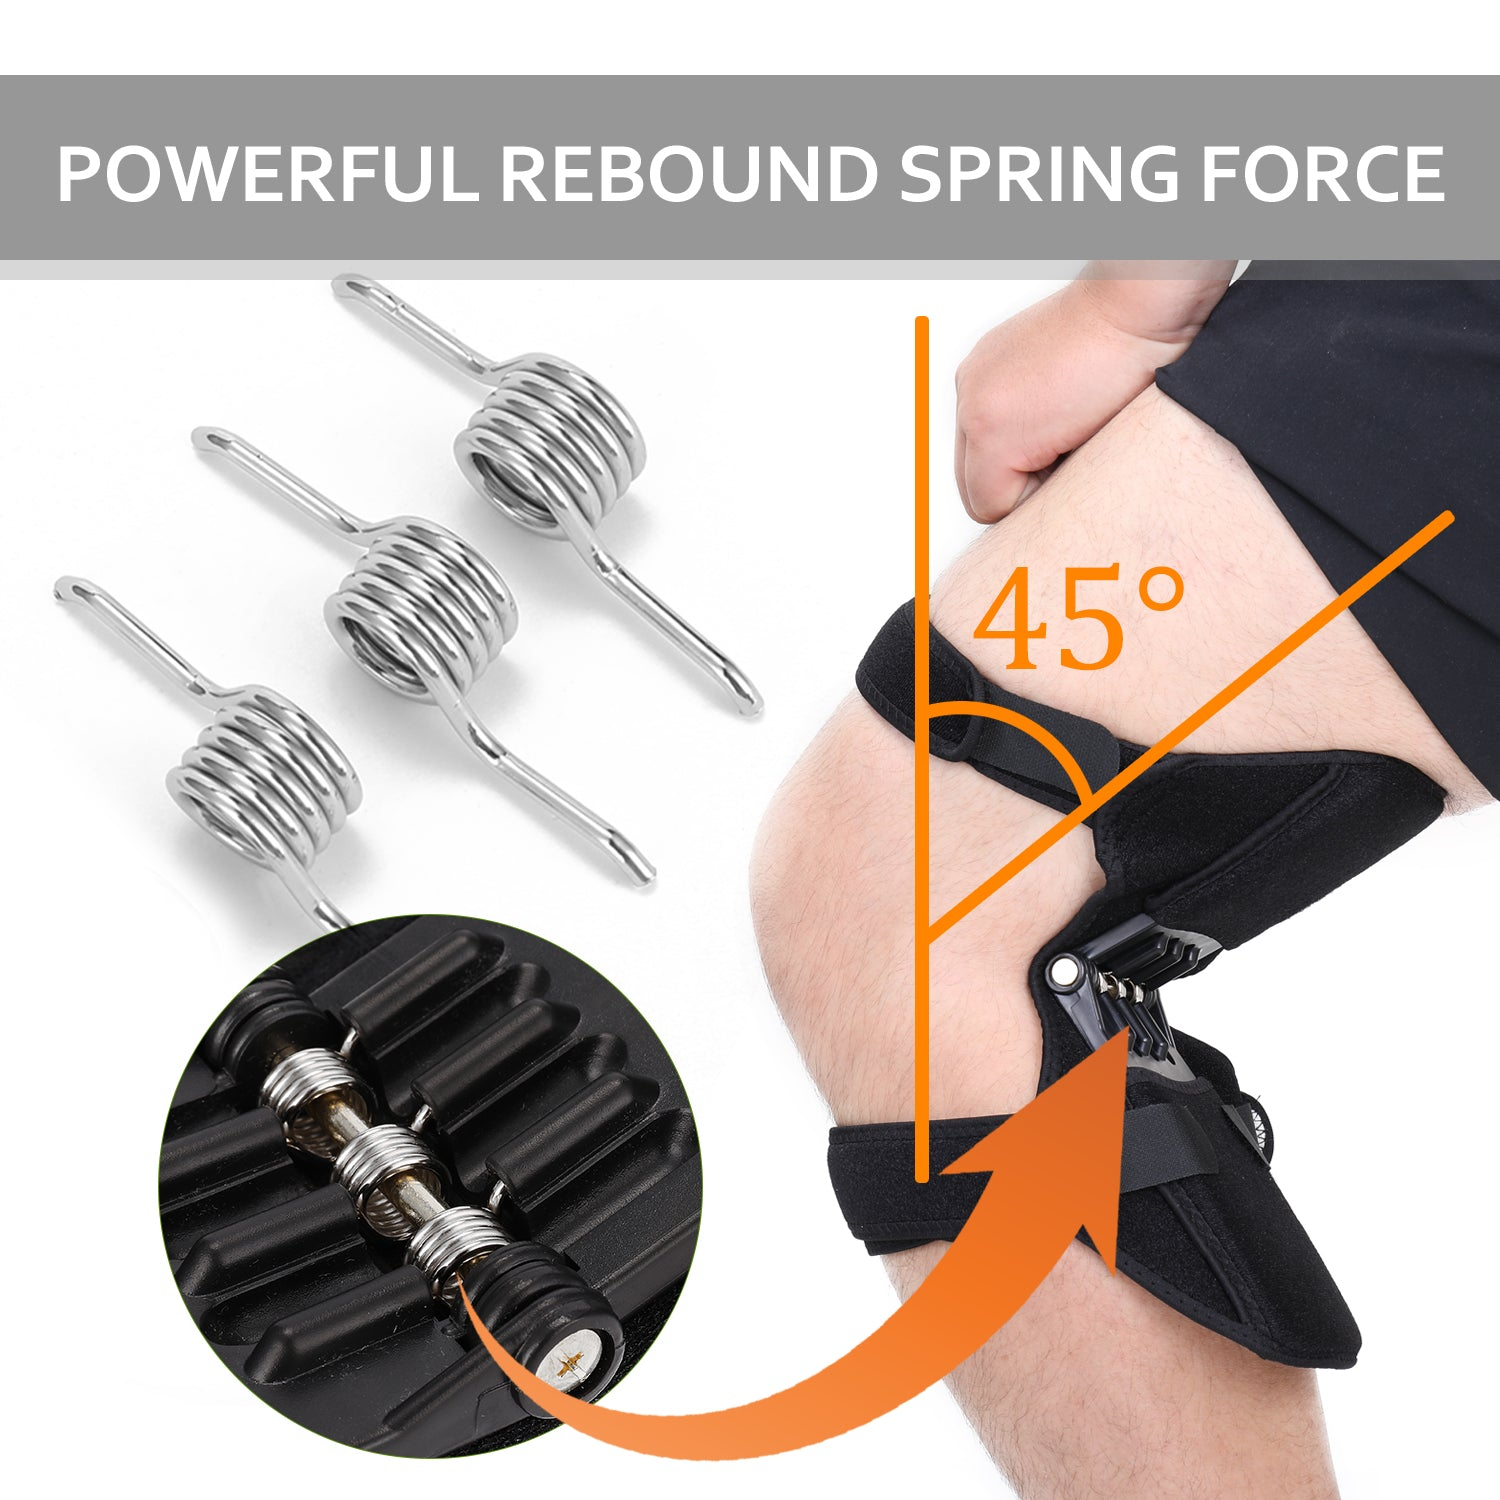 1 Pair Knee Protection Booster Power Lifts Joint Support Pads with Powerful Rebounds Spring Force Old Cold Leg Knee Band for Sports Hiking Climbing Training Squat Reduces Soreness